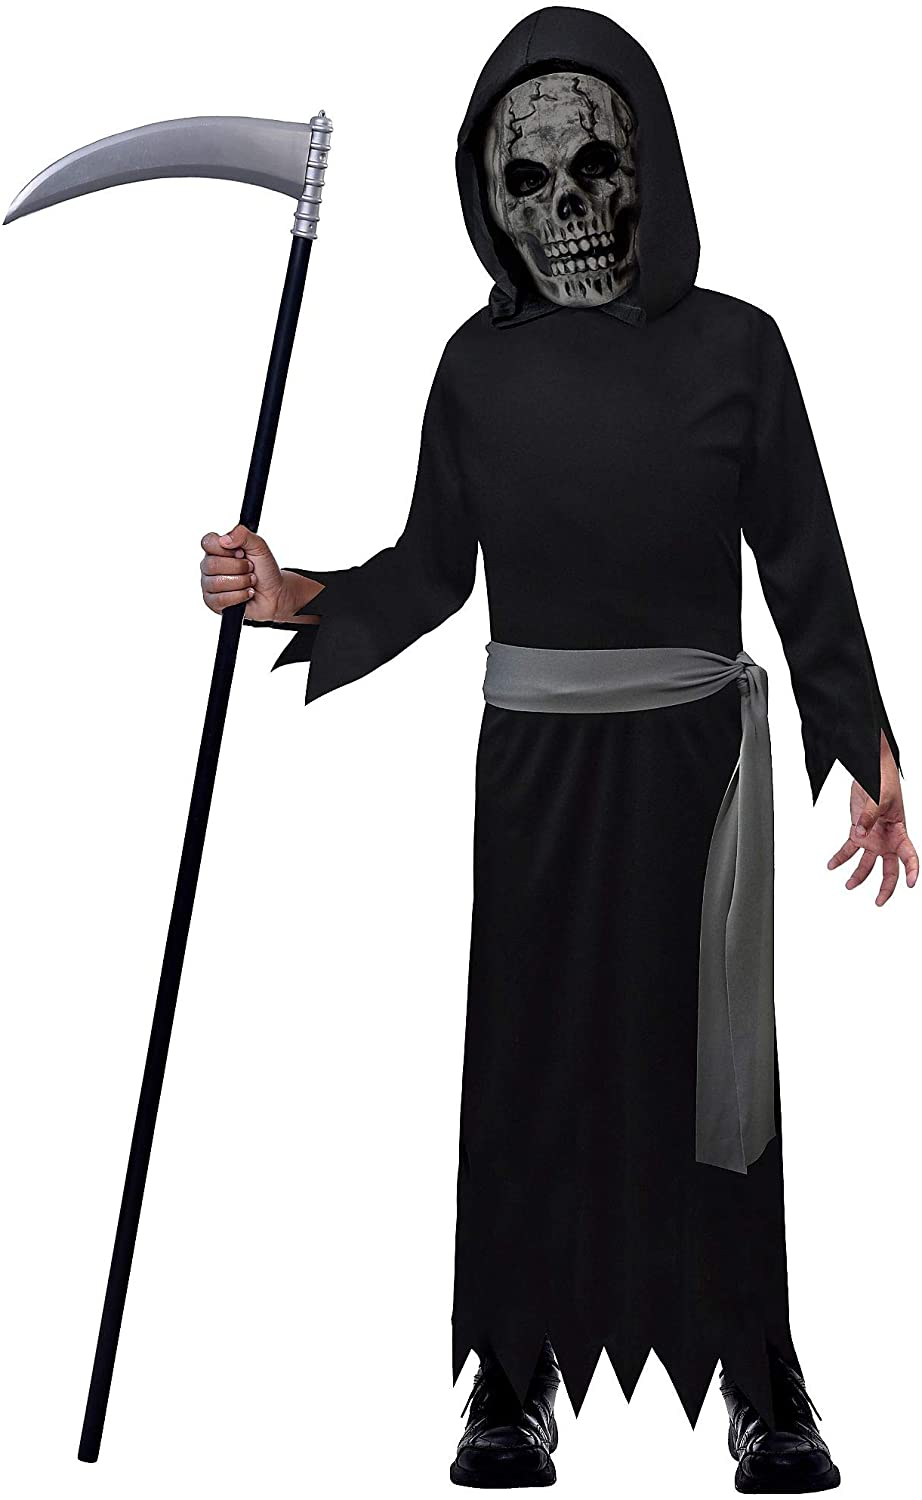 Suit Yourself Death Reaper Halloween Costume for Boys, with Accessories